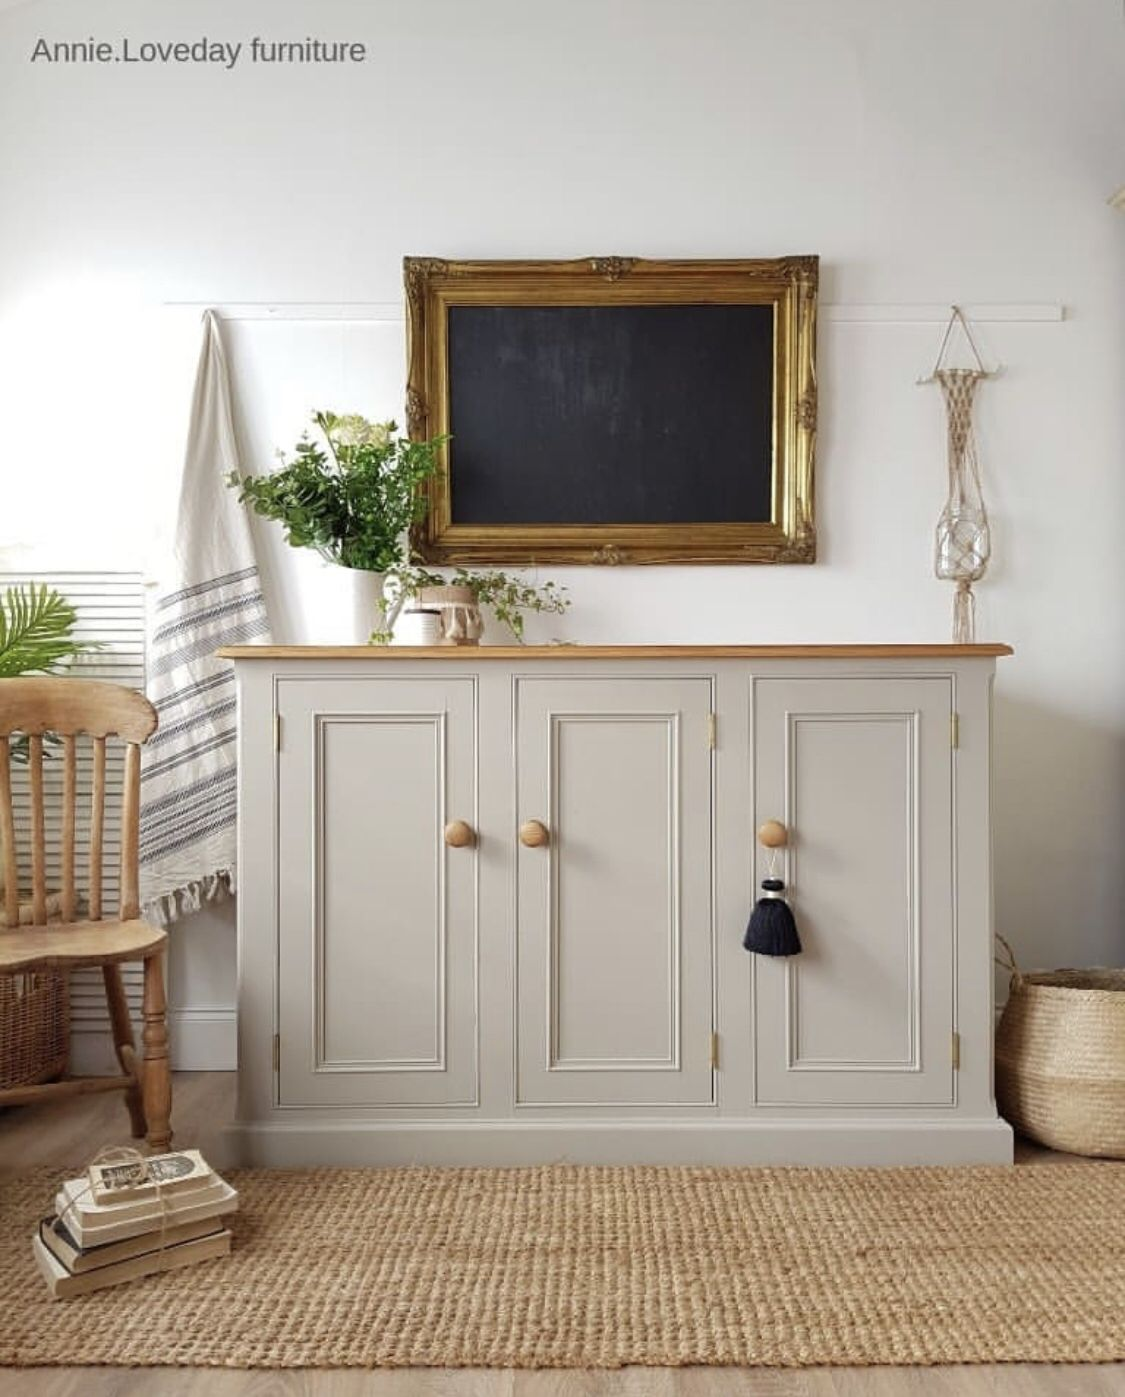 Frenchic Salt Of The Earth Upcycled Home Decor Frenchic Paint Furniture Bedroom Furniture Makeover